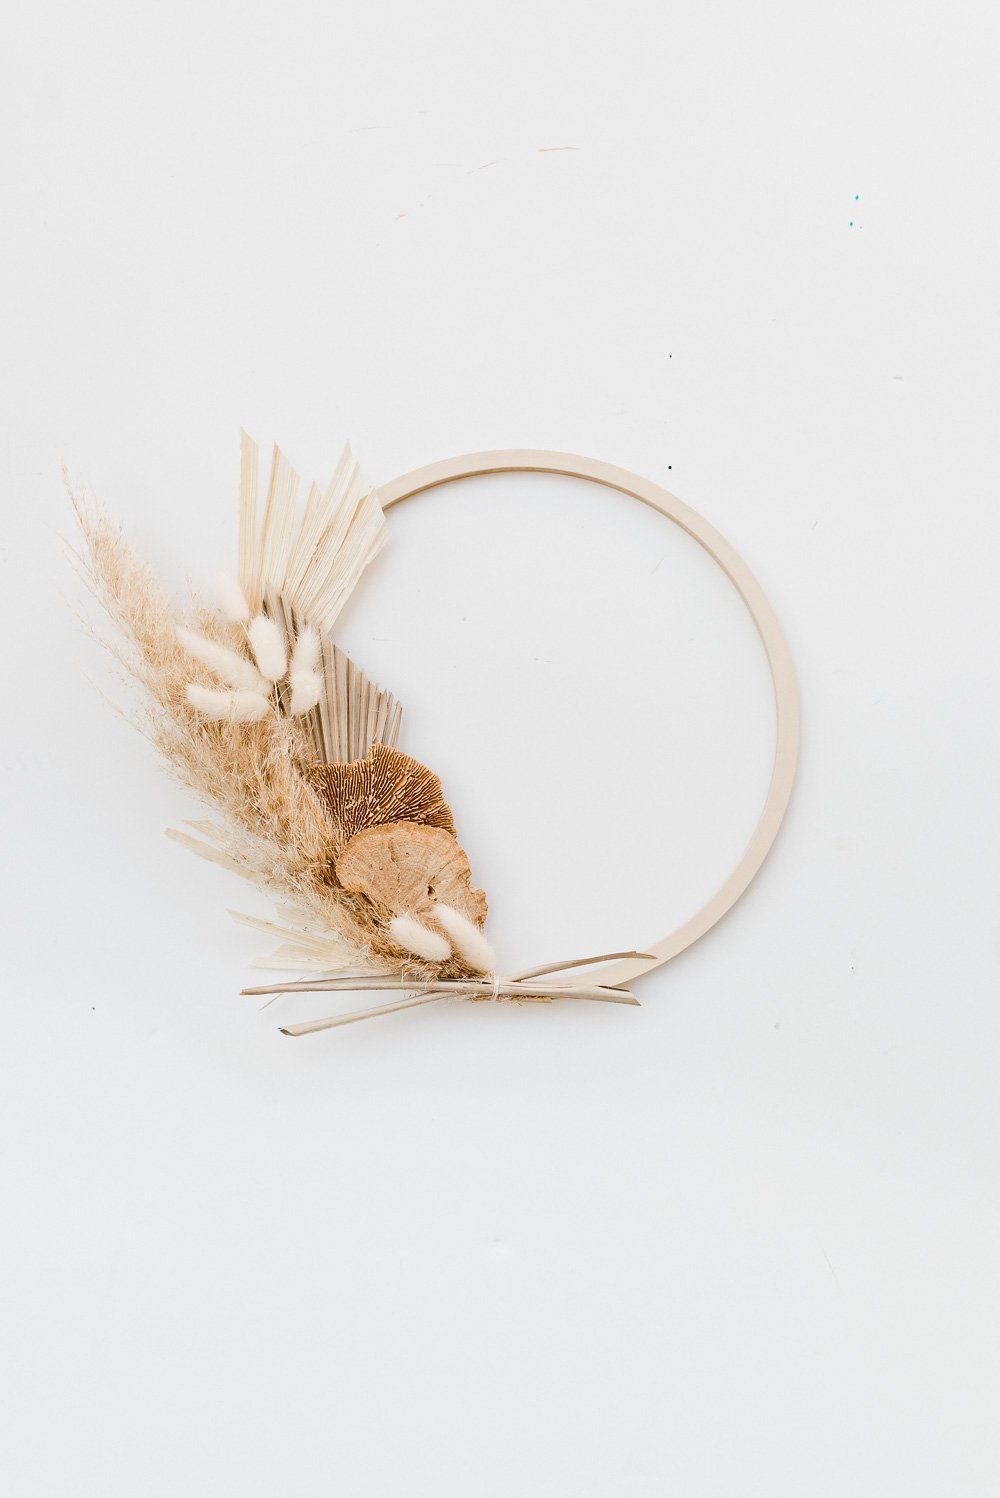 An asymmetrical fall wreath made of pampas grass, wheat, and palm leaves.